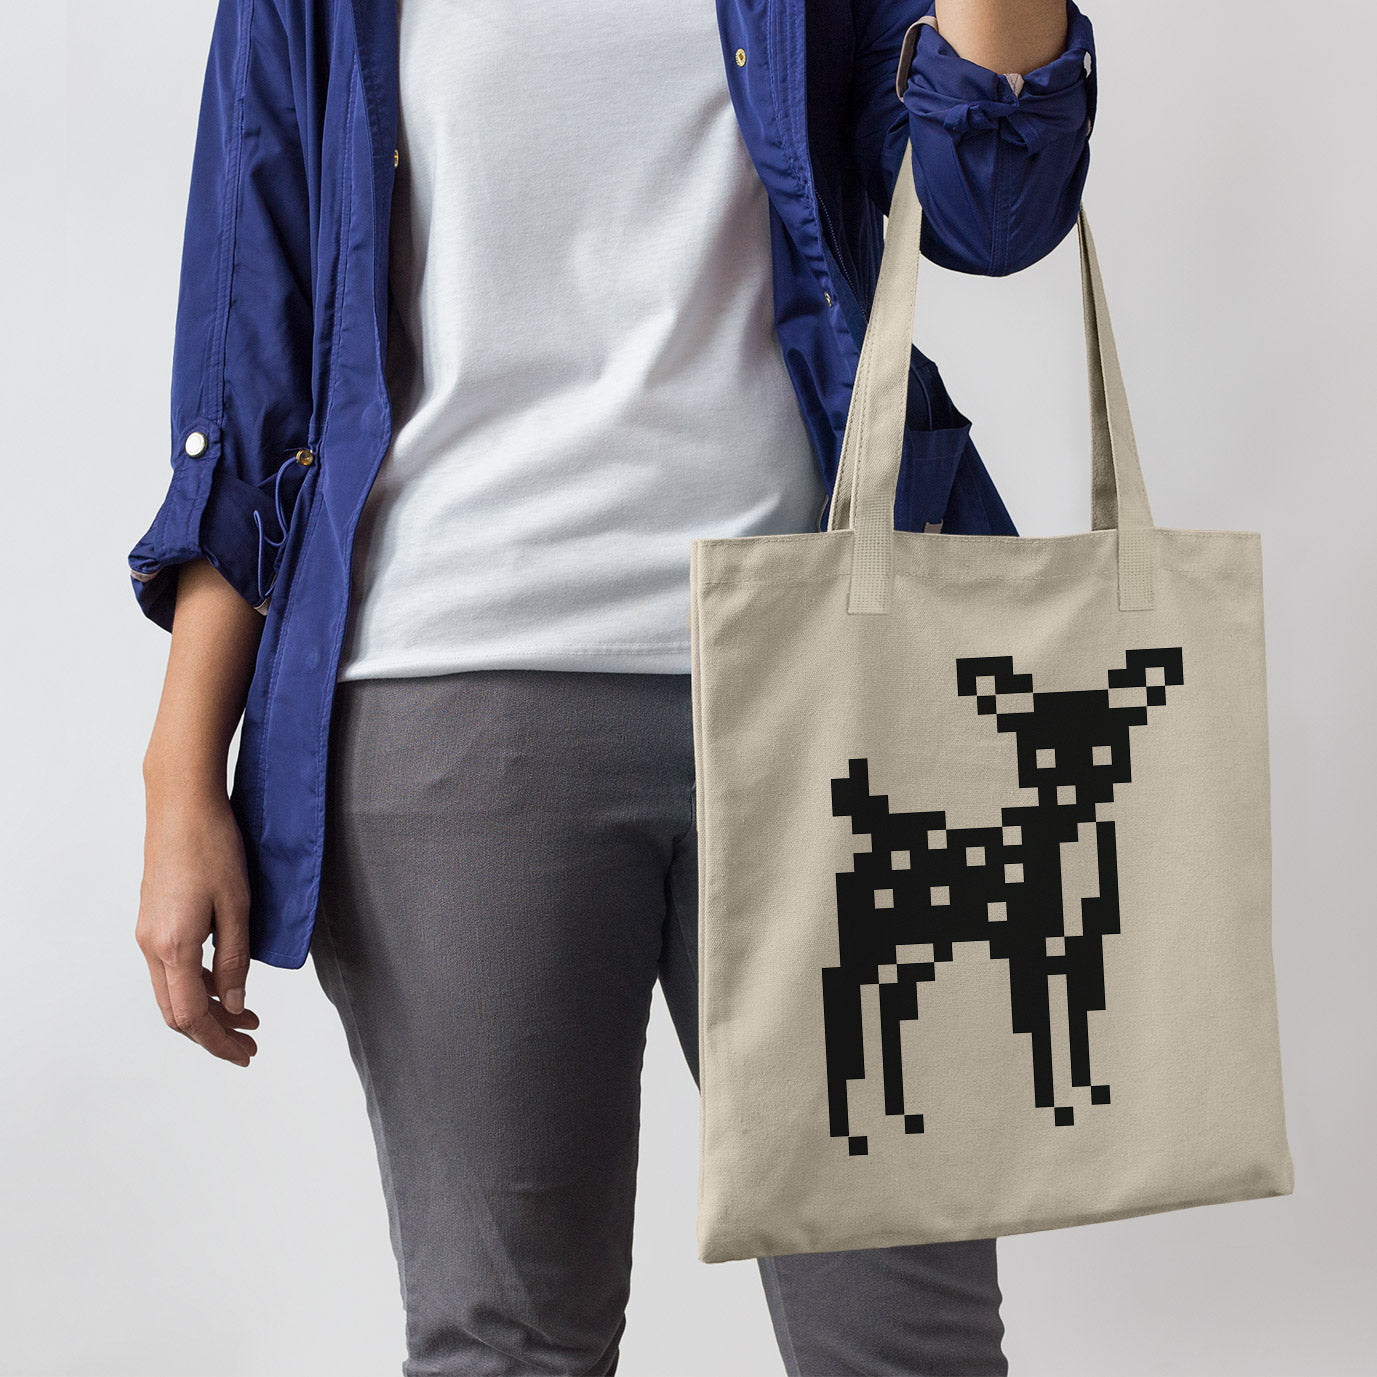 8-Bit Deer Tote Bag - Space Lake